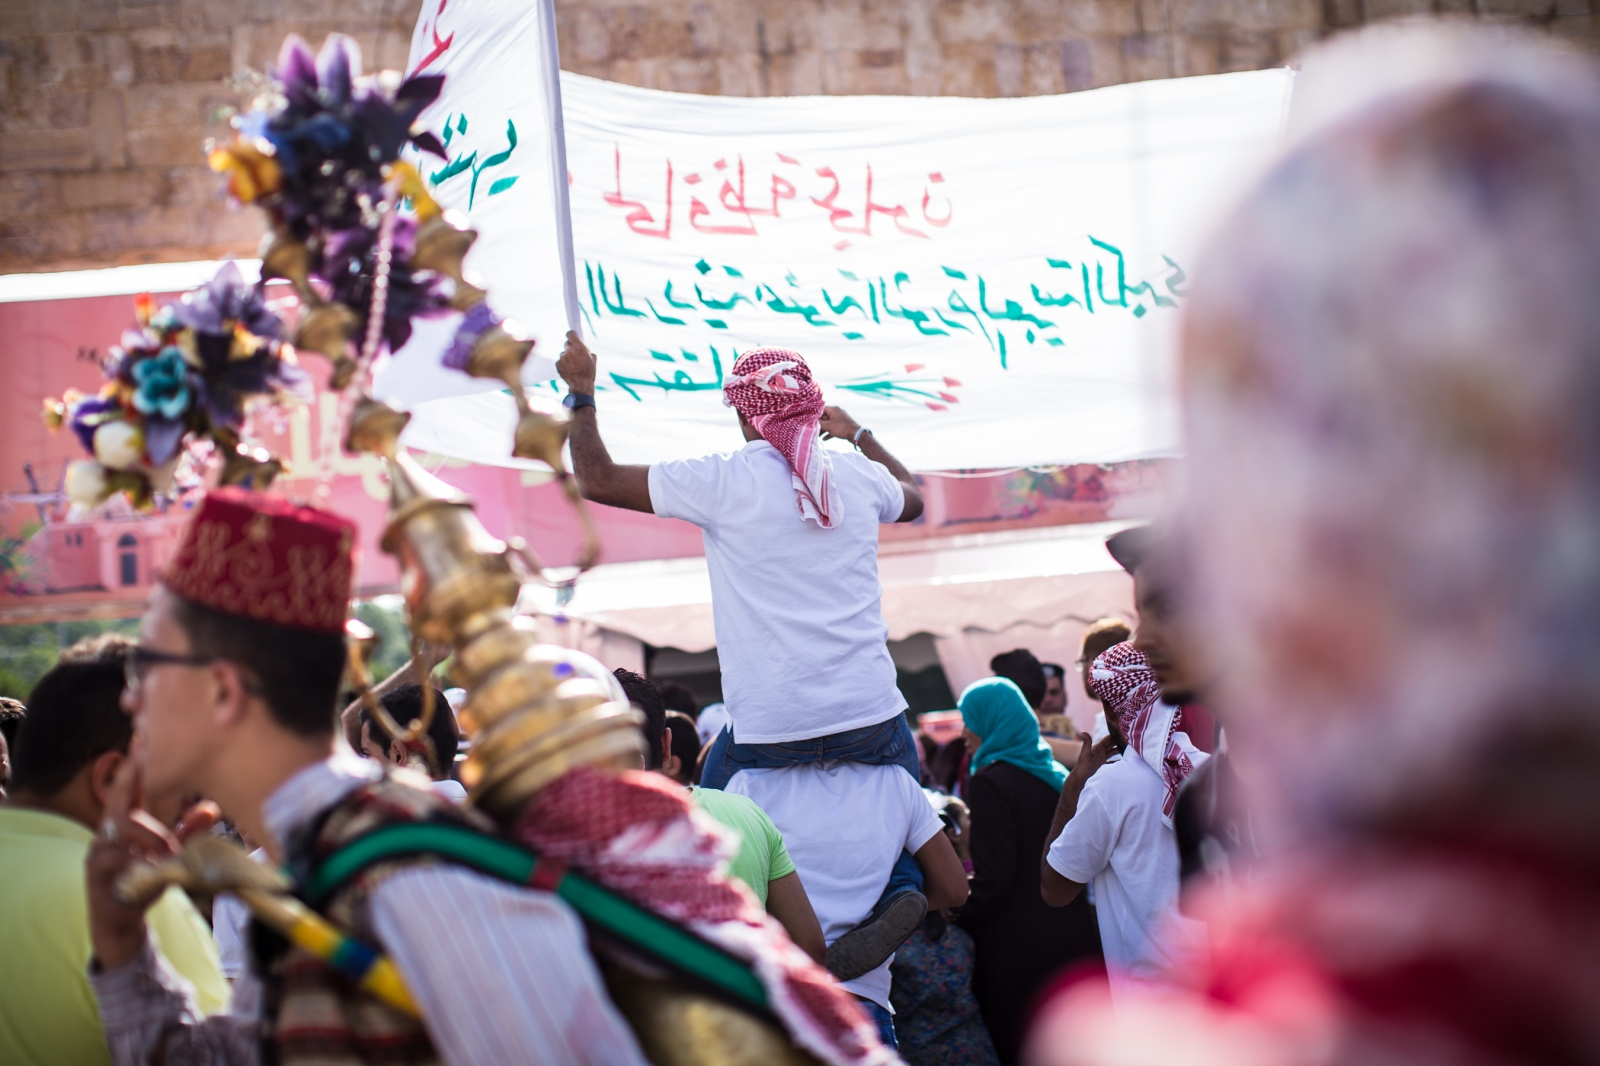 A parade chanting slogans in support of King Abdullah II passes through the crowd outside King Hussein Park in Amman, Jordan, as people gathered to celebrate the 100th anniversary of the Great Arab Revolt on June 3, 2016.